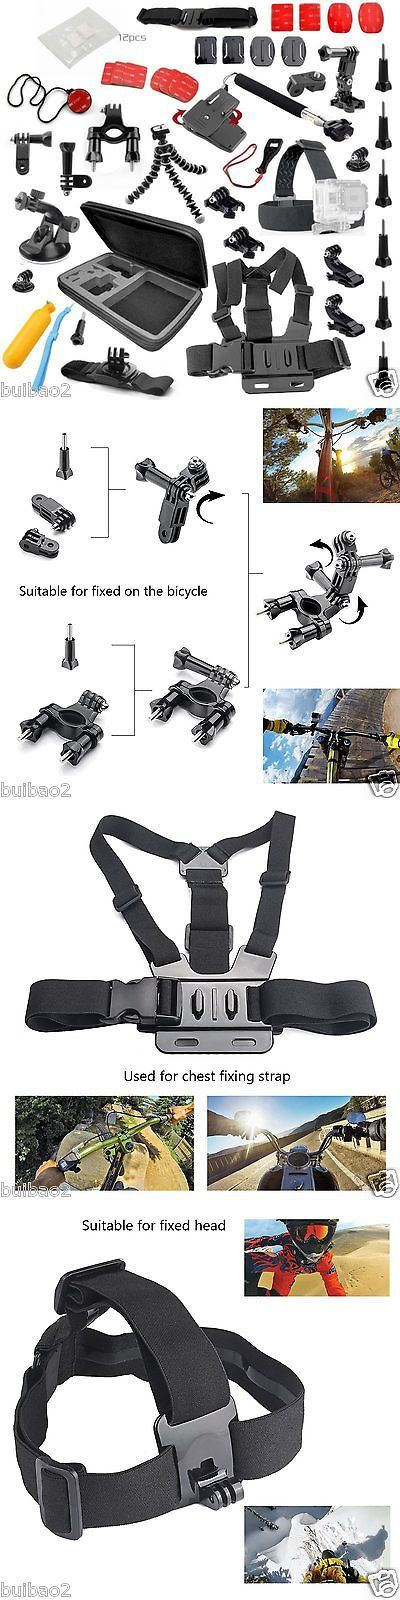 photo and video: 70In1 Pole Head Chest Mount Strap For Gopro Hero 3 4 Camera Accessories Set Kit -> BUY IT NOW ONLY: $37.99 on eBay!